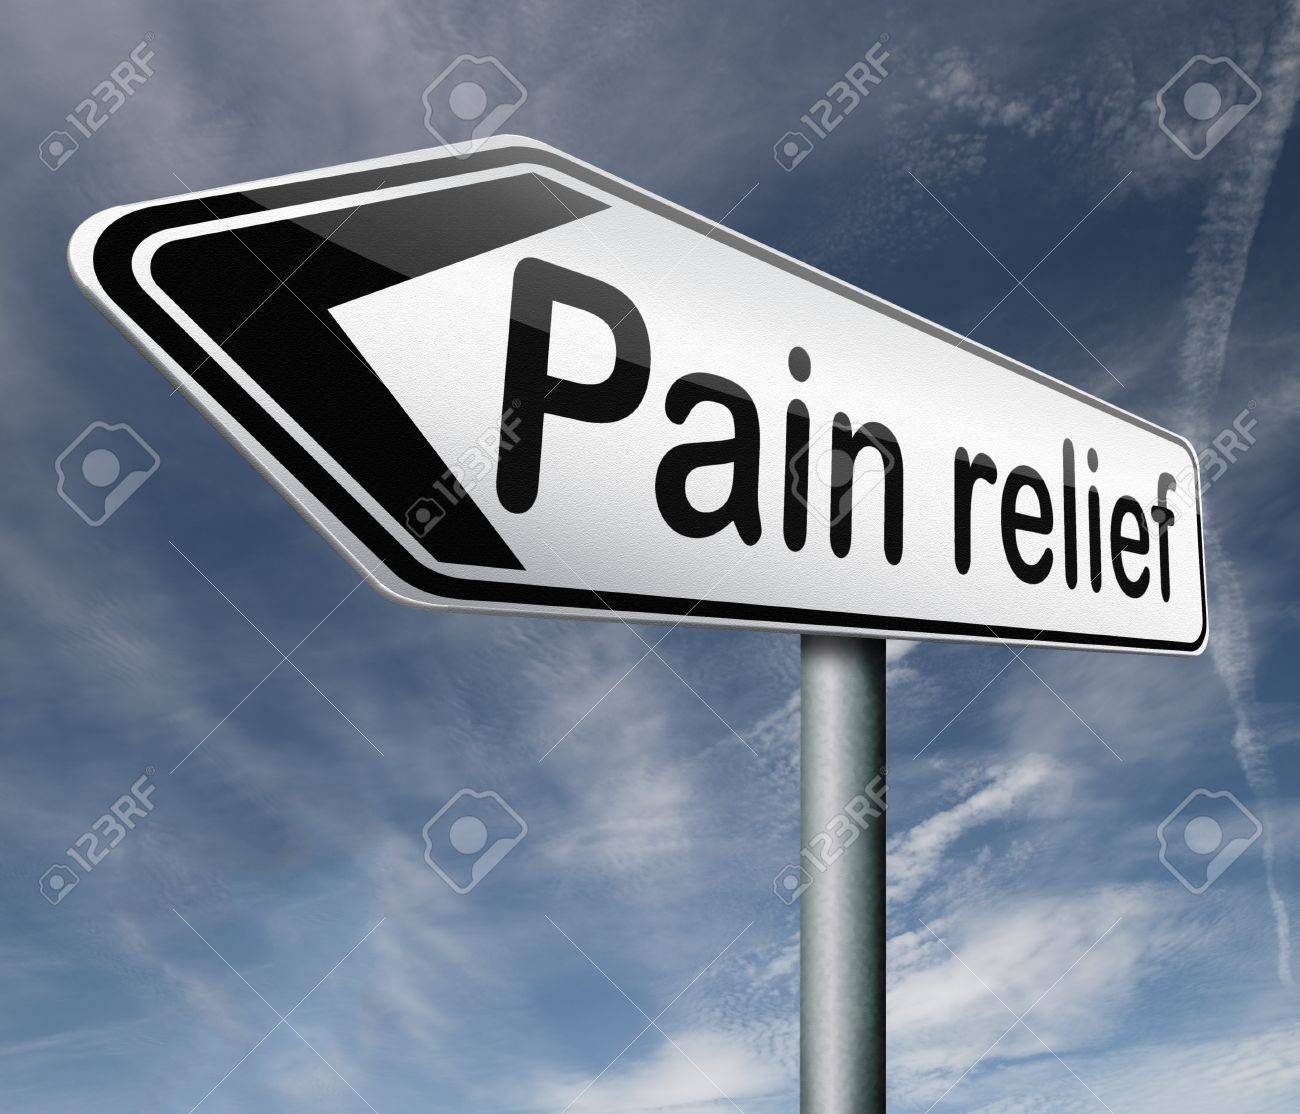 pain relief or management by painkiller or other treatment chronic back injury road sign with text Stock Photo - 16821420